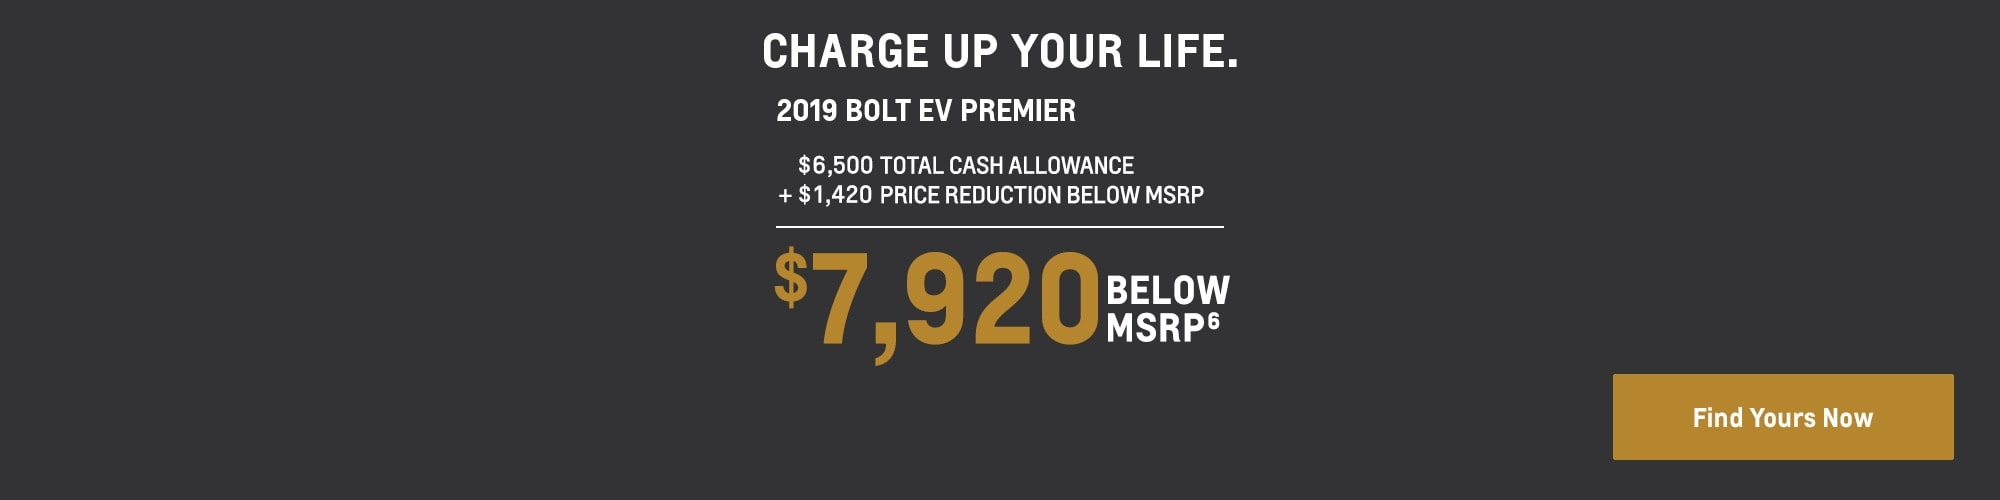 2019 Bolt EV: $7,920 Below MSRP